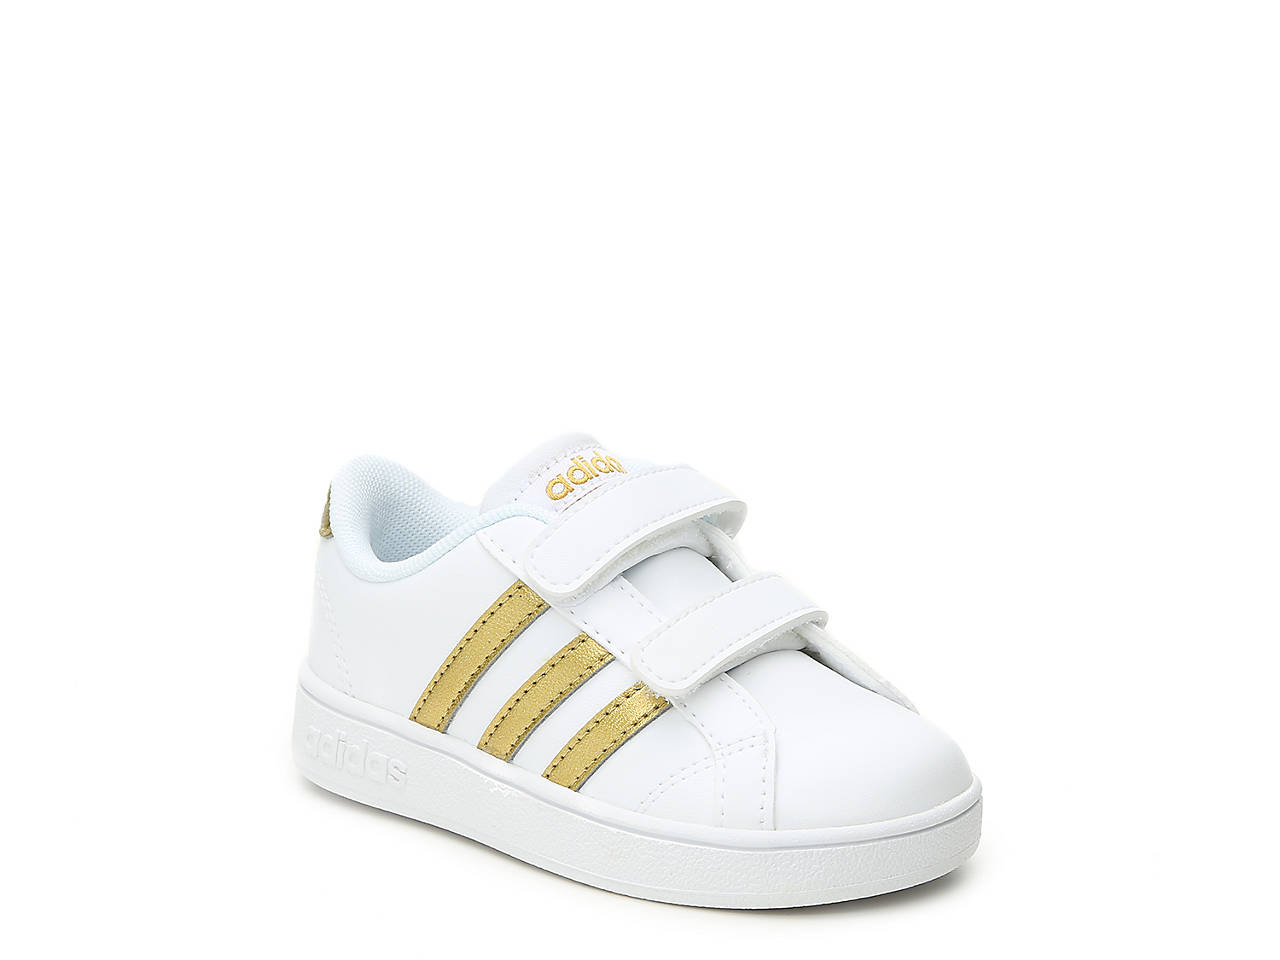 Toddler amp; Sneaker Infant Kids Dsw Adidas Shoes Baseline SpxBwtPqZ